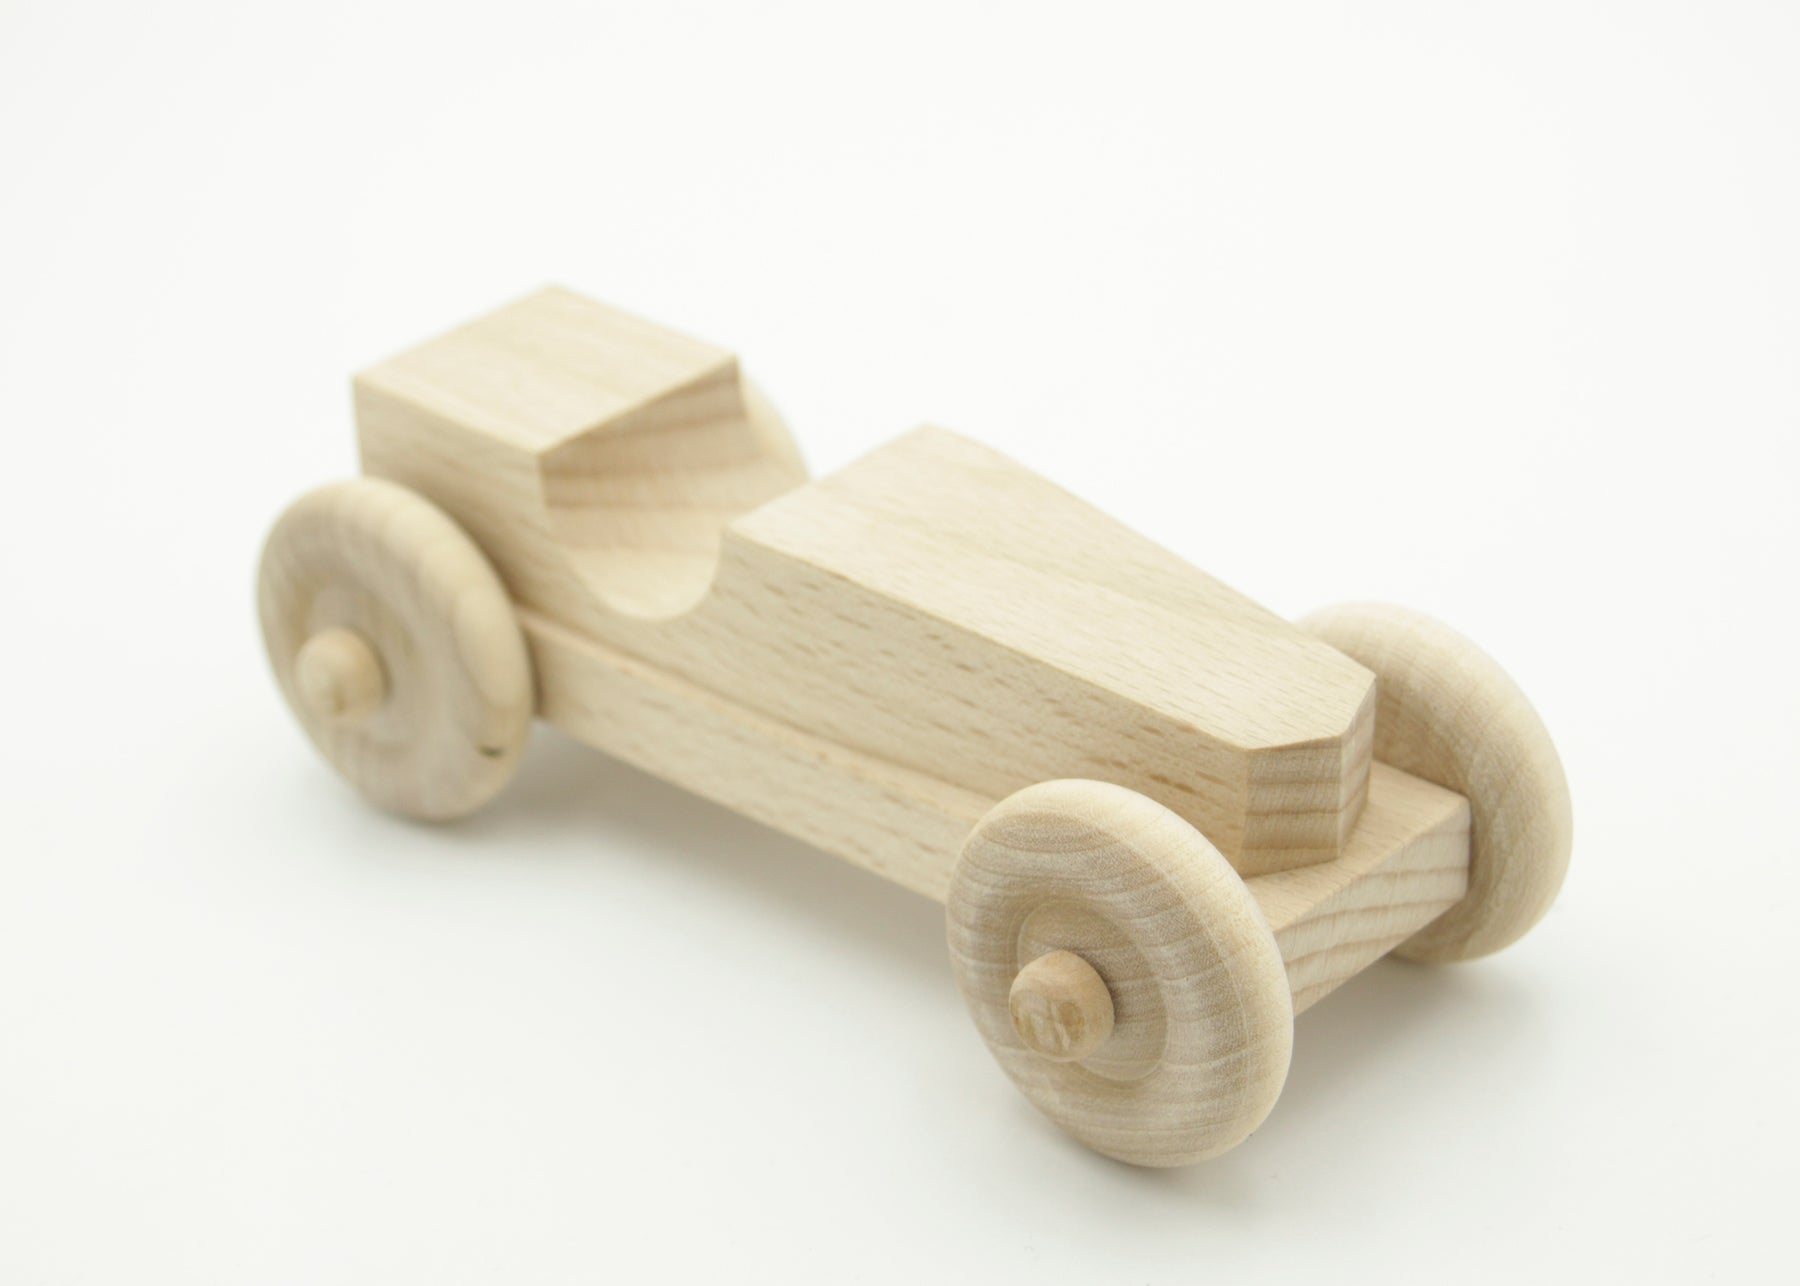 Wooden Toy - inndi